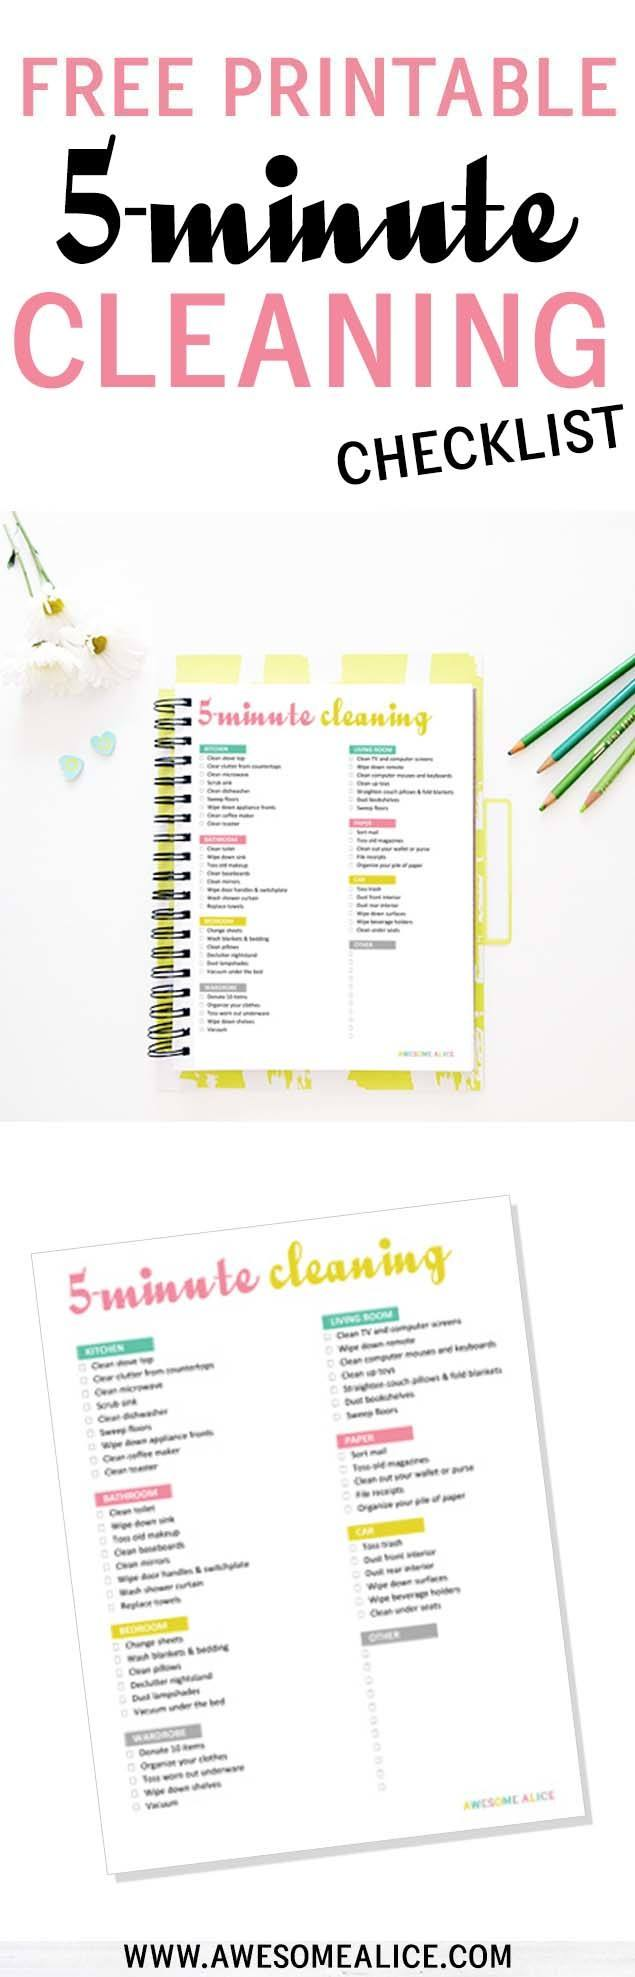 image relating to Printable Cleaning Schedule for Working Moms known as The Least complicated Free of charge 5-Second Cleansing List for Active Mothers